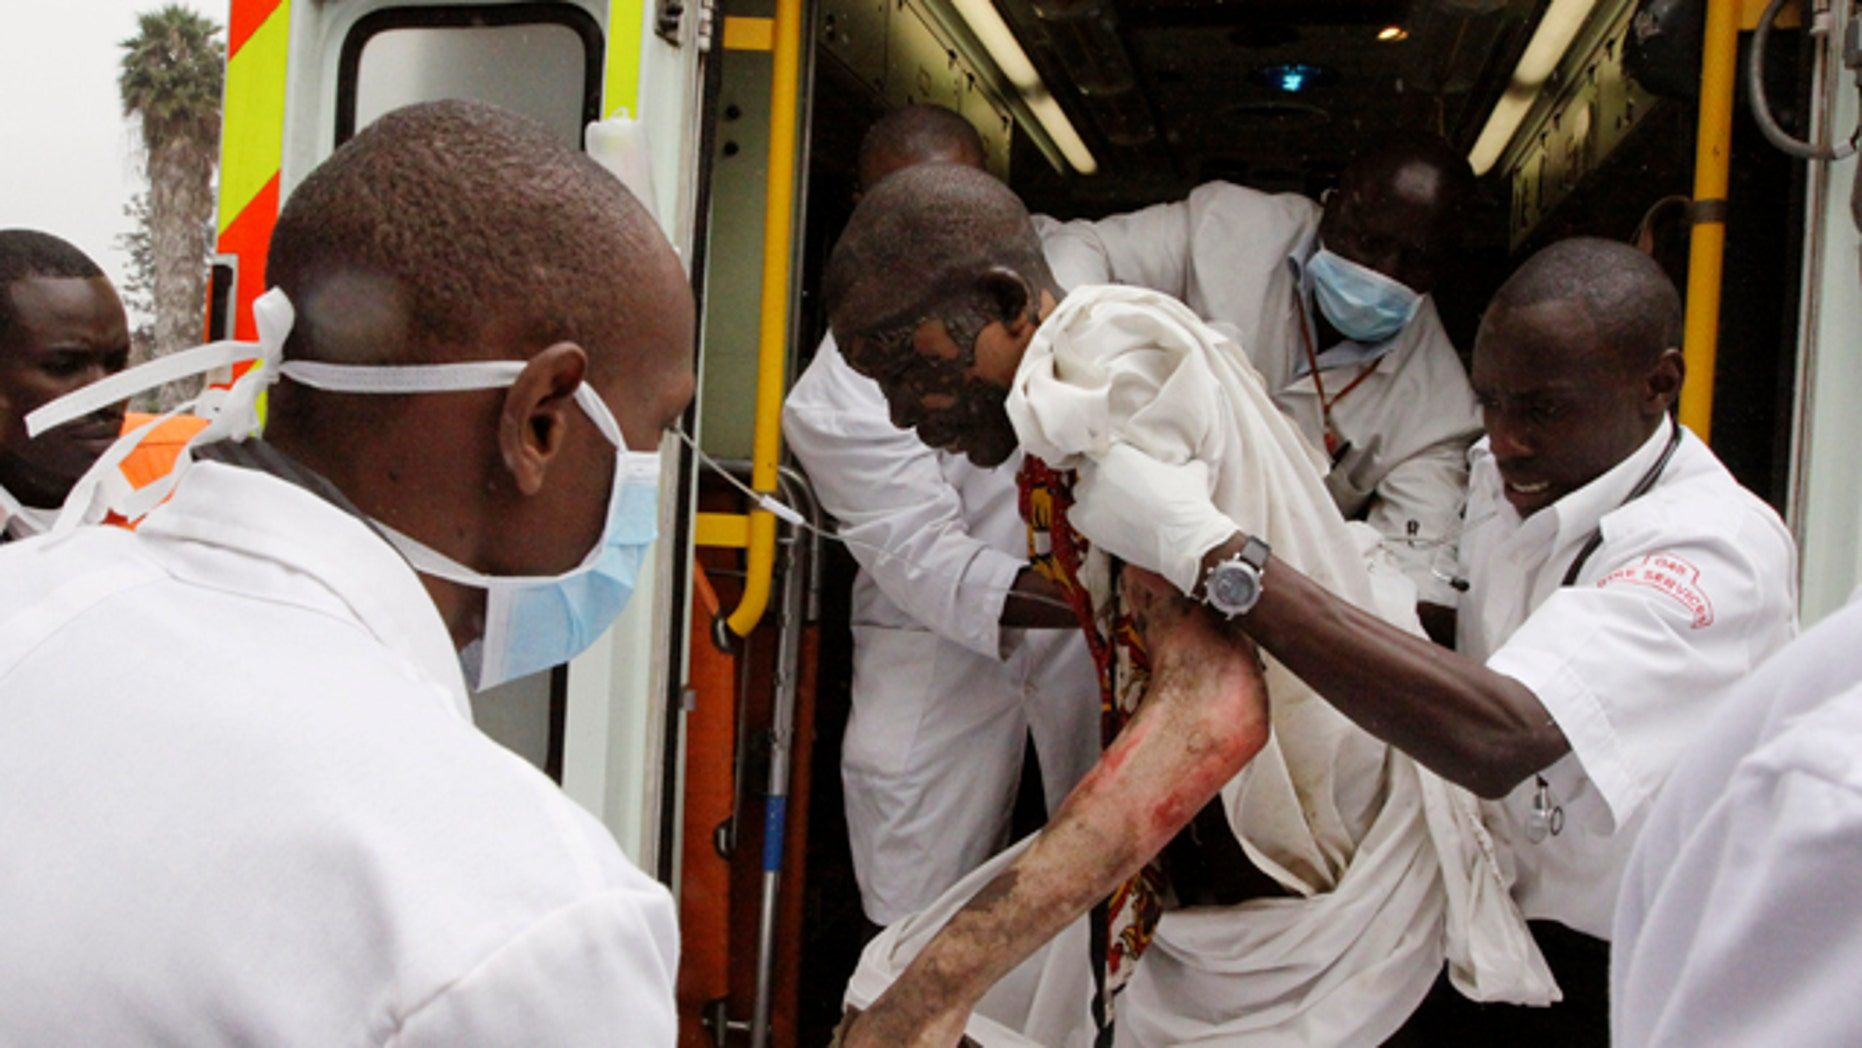 Sept. 12: A person injured in a gasoline pipeline incident is brought to Kenyatta National Hospital in Nairobi, Kenya. A local official says at least 61 bodies have been recovered after an explosion of a gasoline pipeline running through a slum in Kenya's capital.